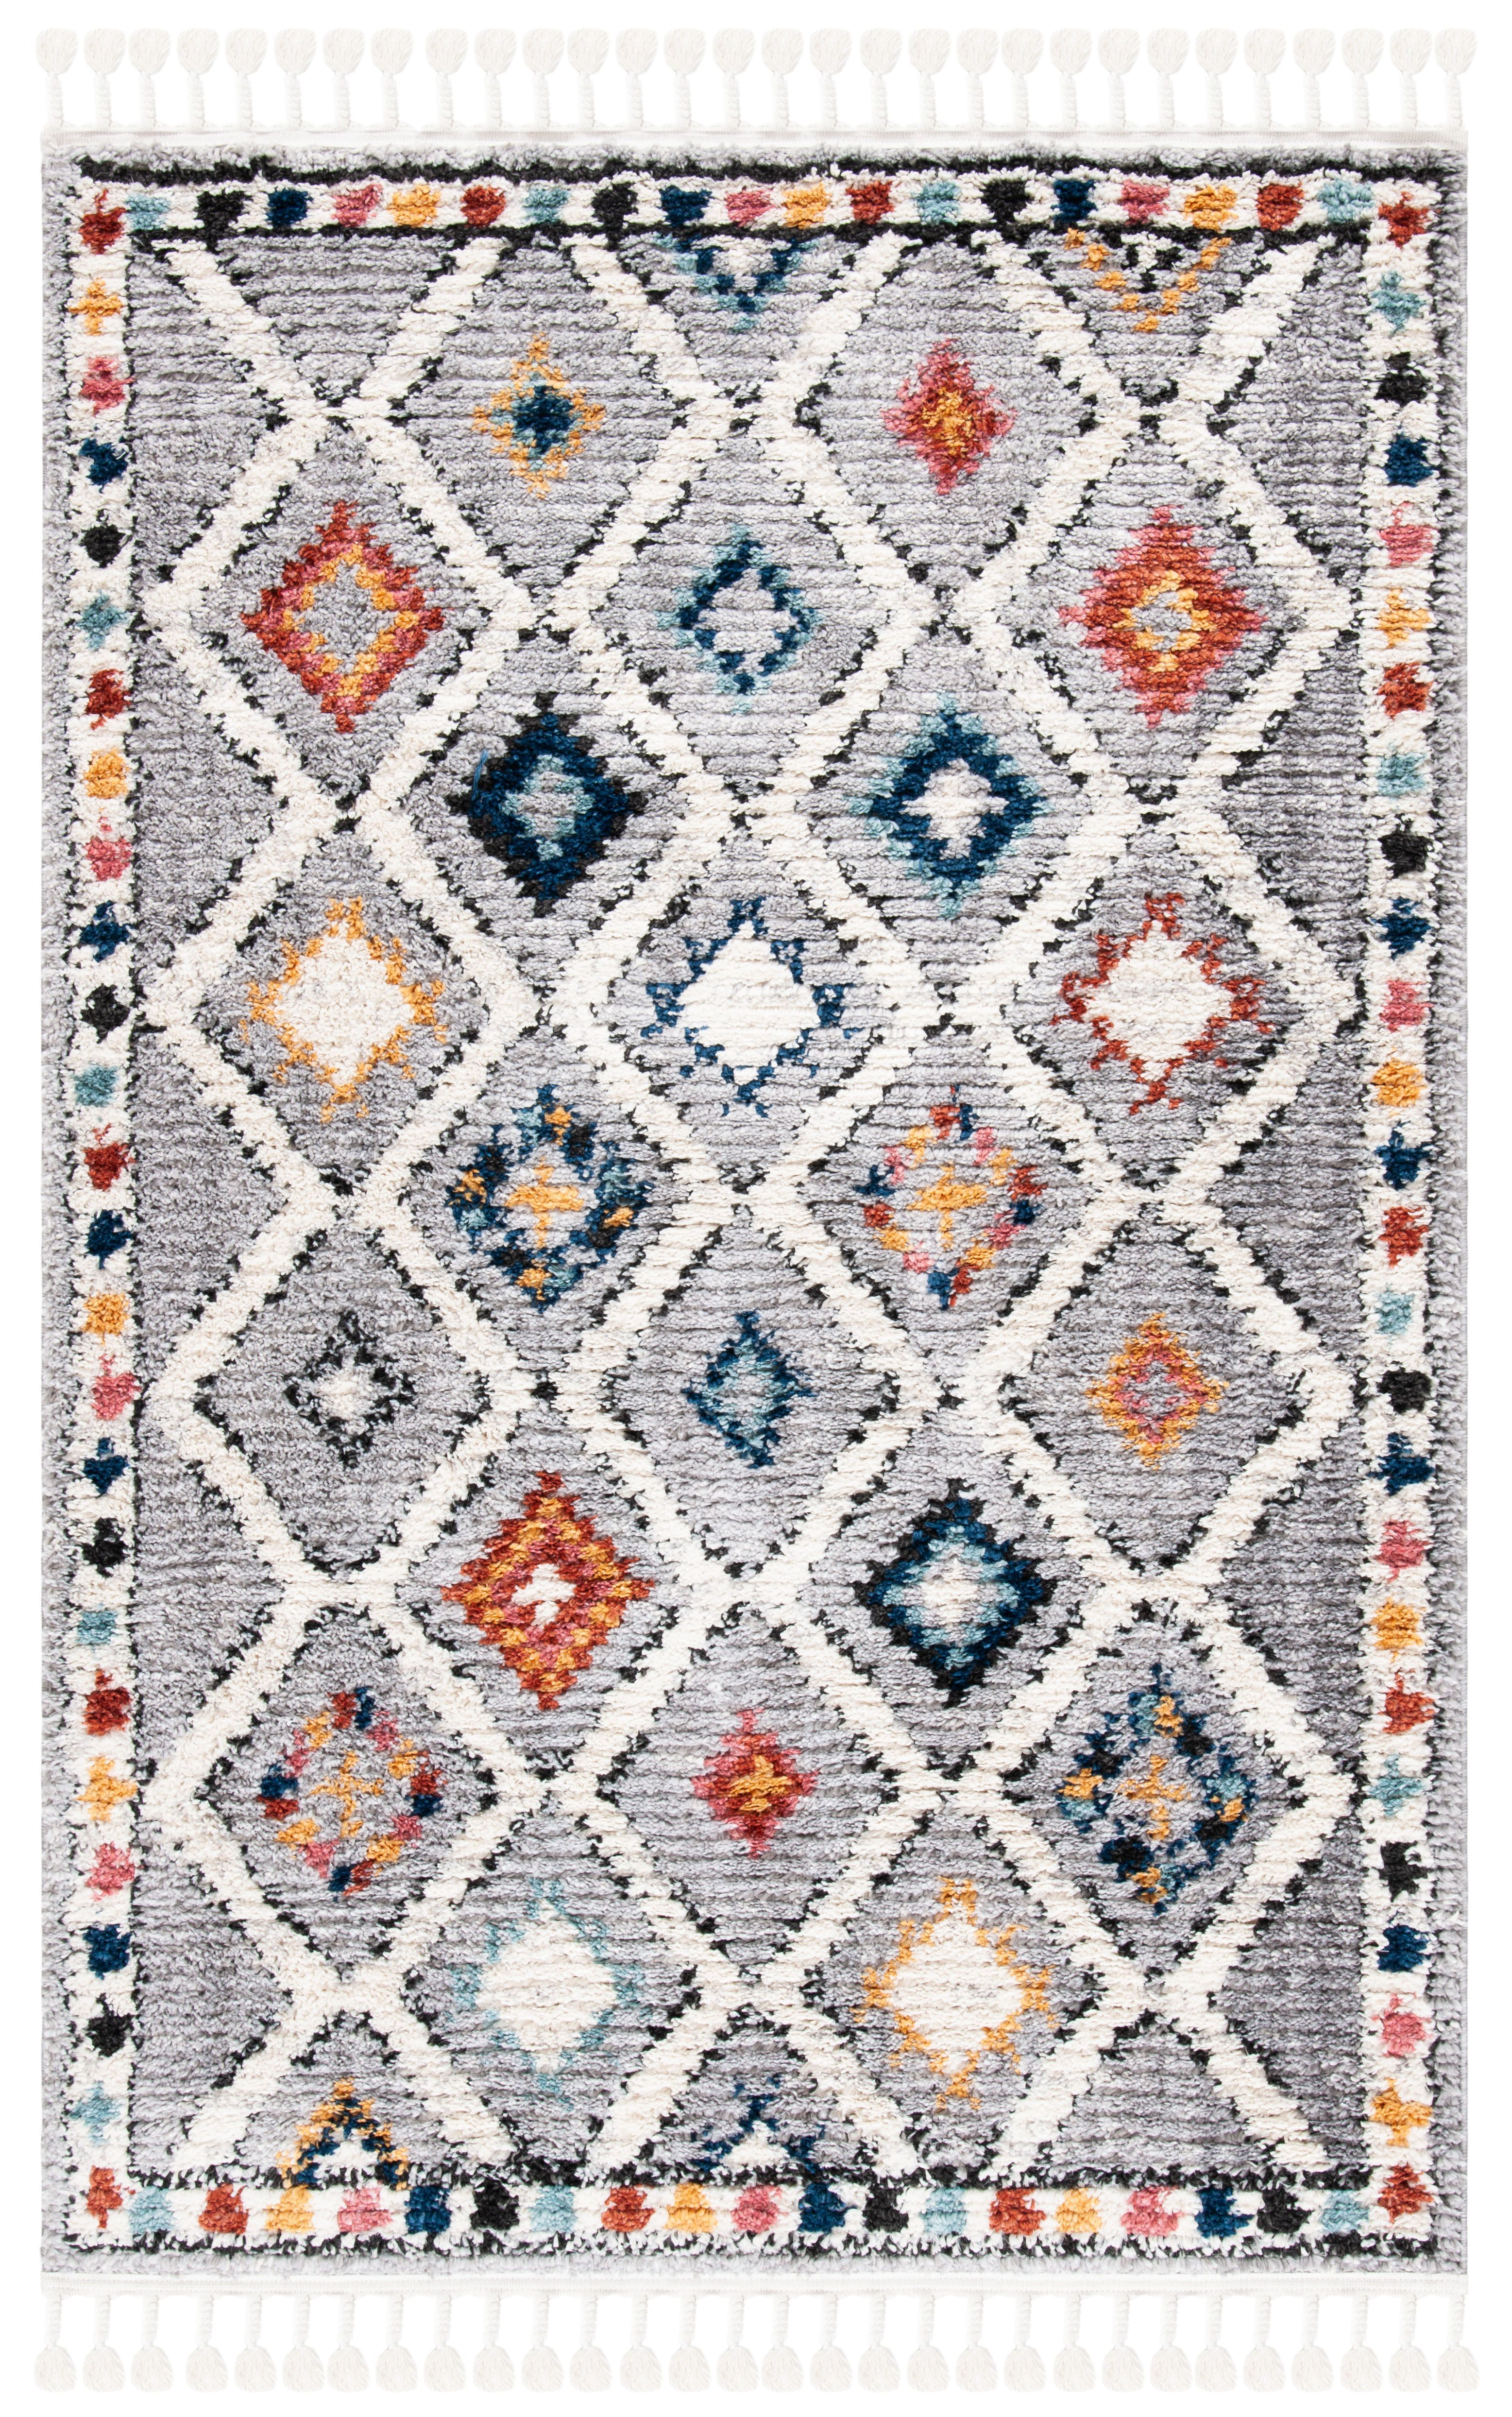 morocco rug grey multi 4 x 6 in 2020 boho chic decor rugs area rugs on boho chic kitchen rugs id=92727